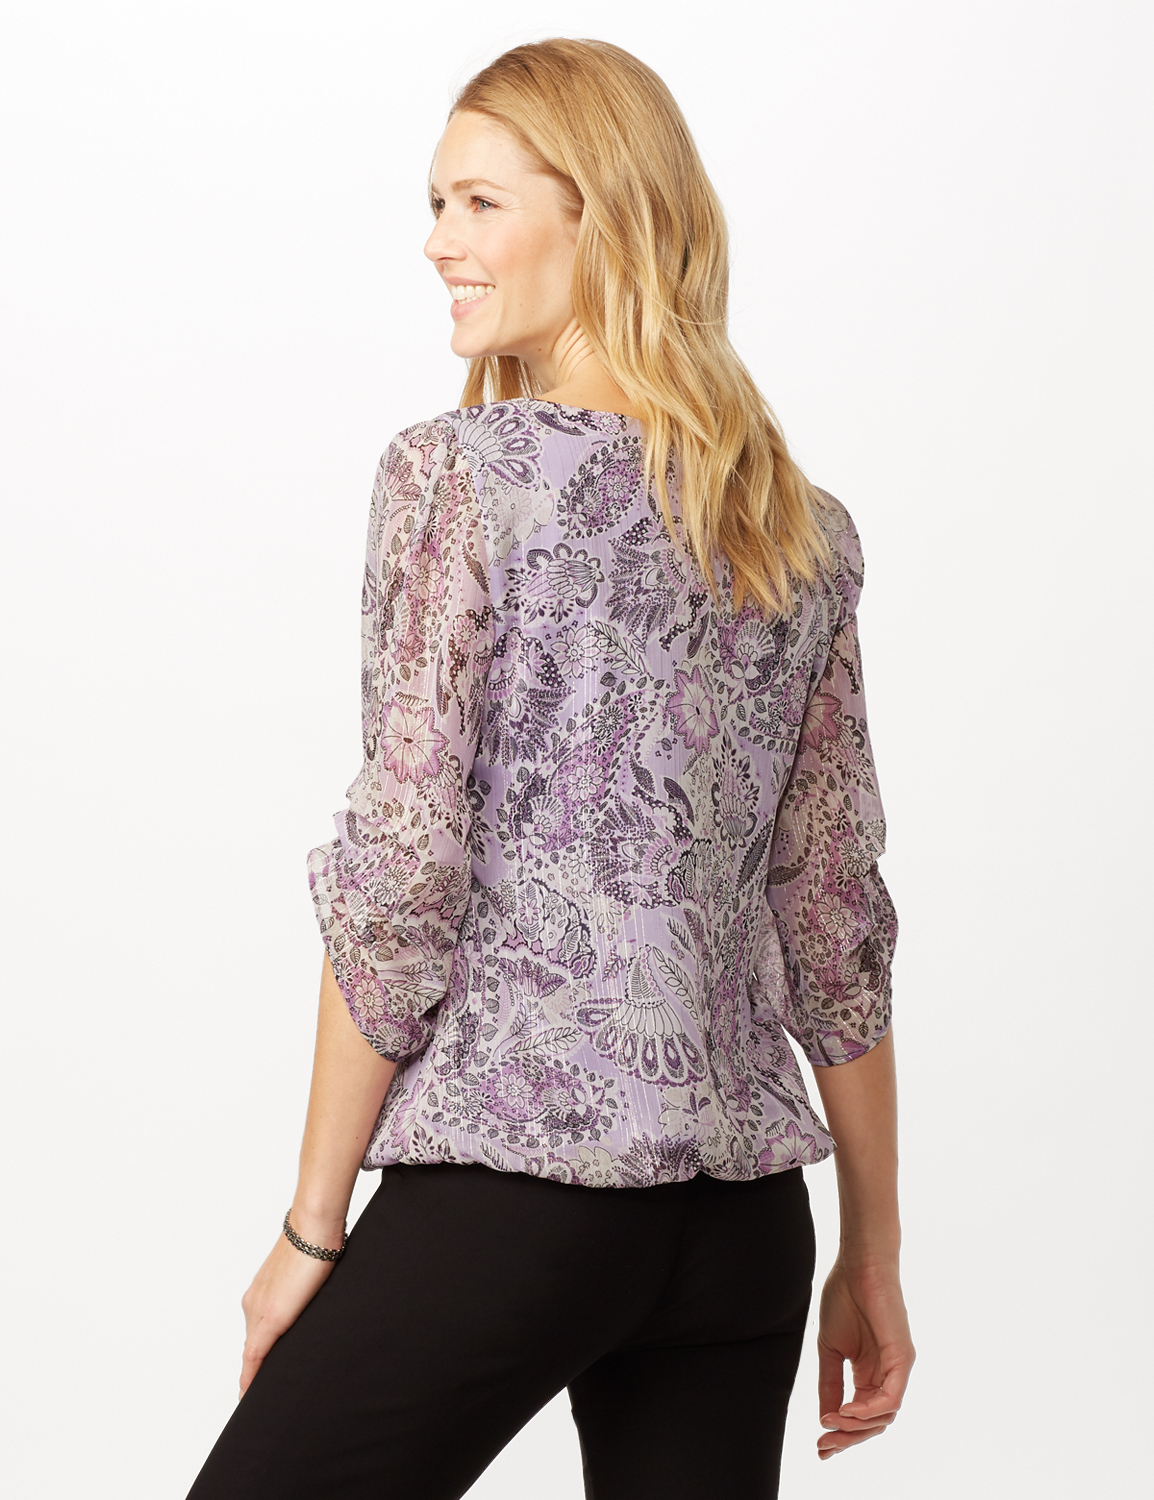 Paisley Floral Bubble Hem Woven Top with Chain Neck Detail -Purple - Back